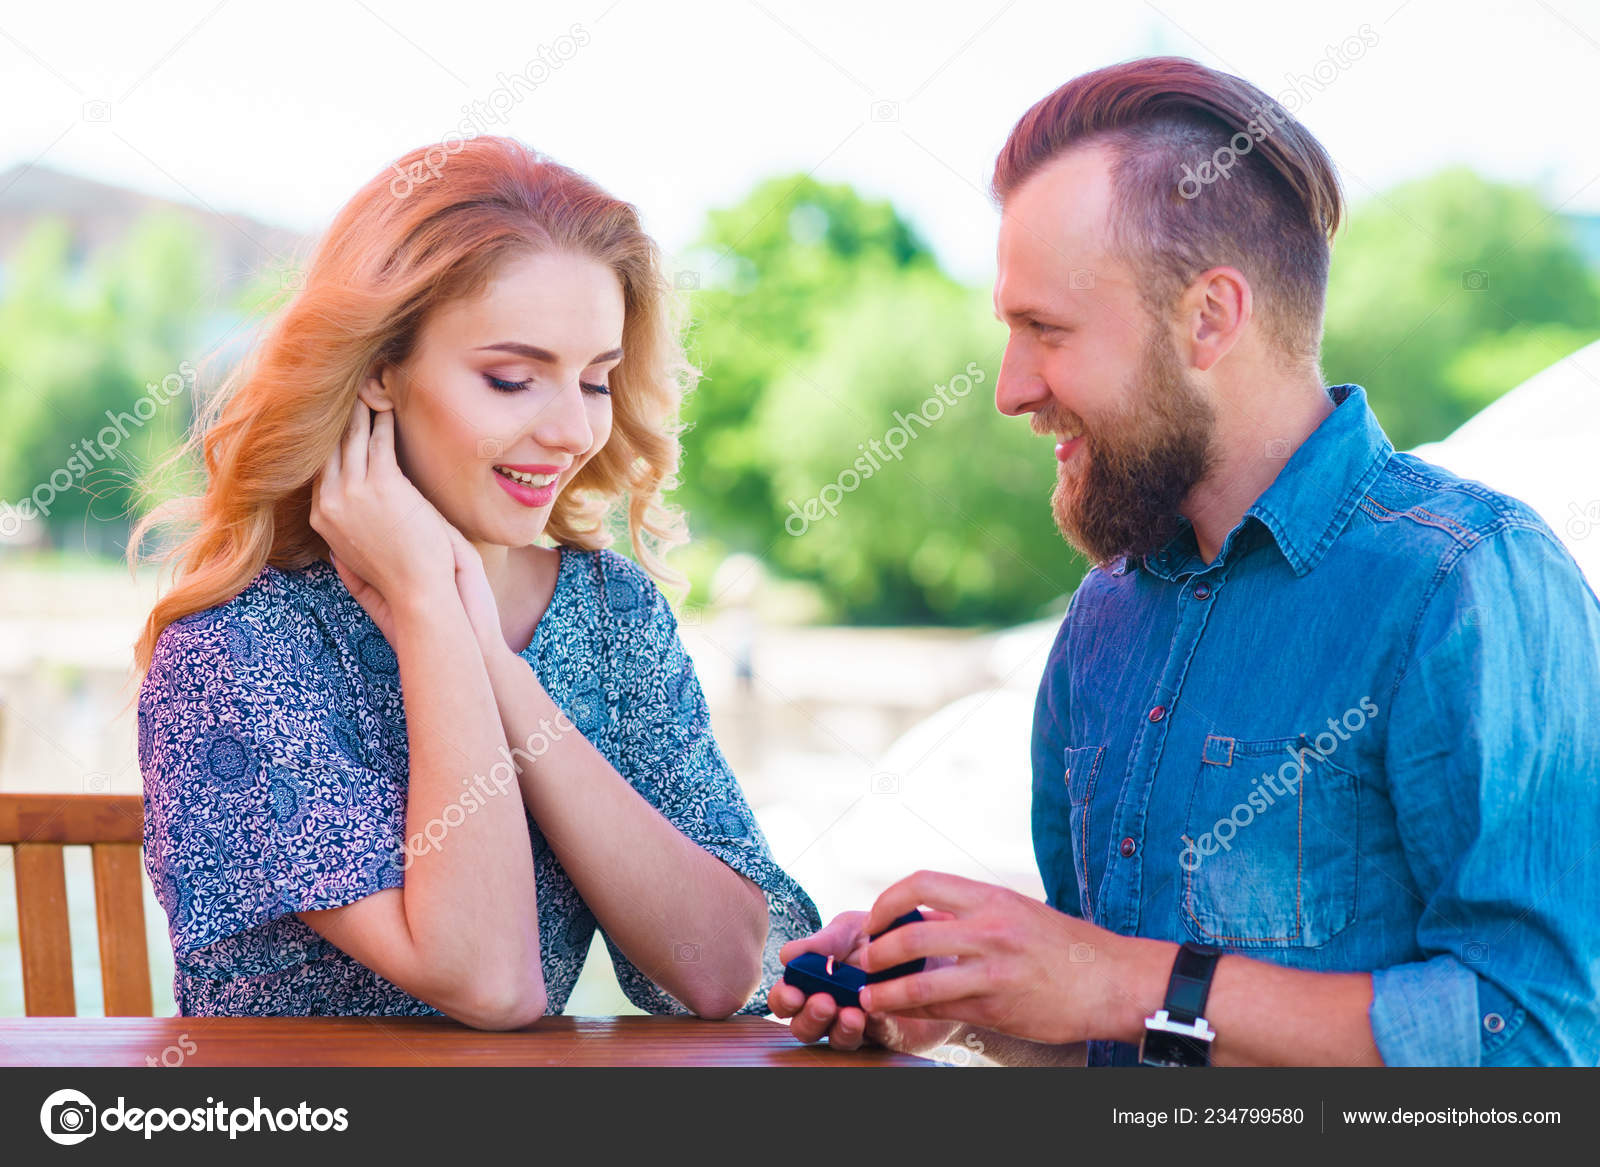 dating an engaged man